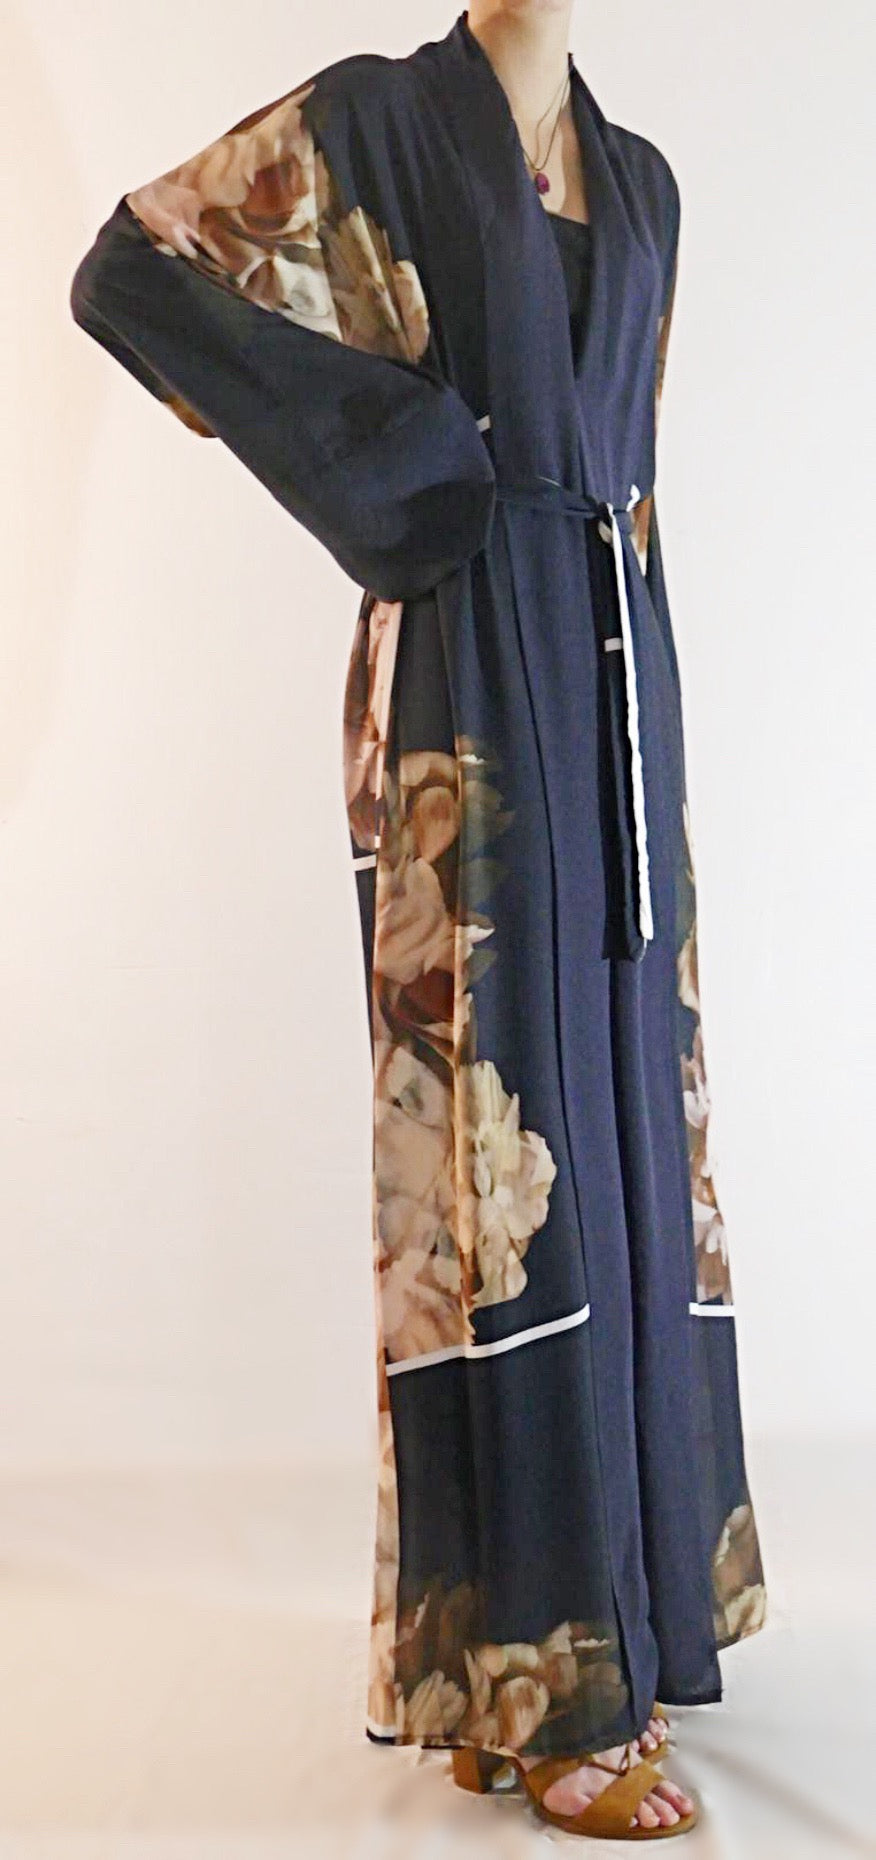 Elegant Abaya that lends itself perfectly to smart casual wear.